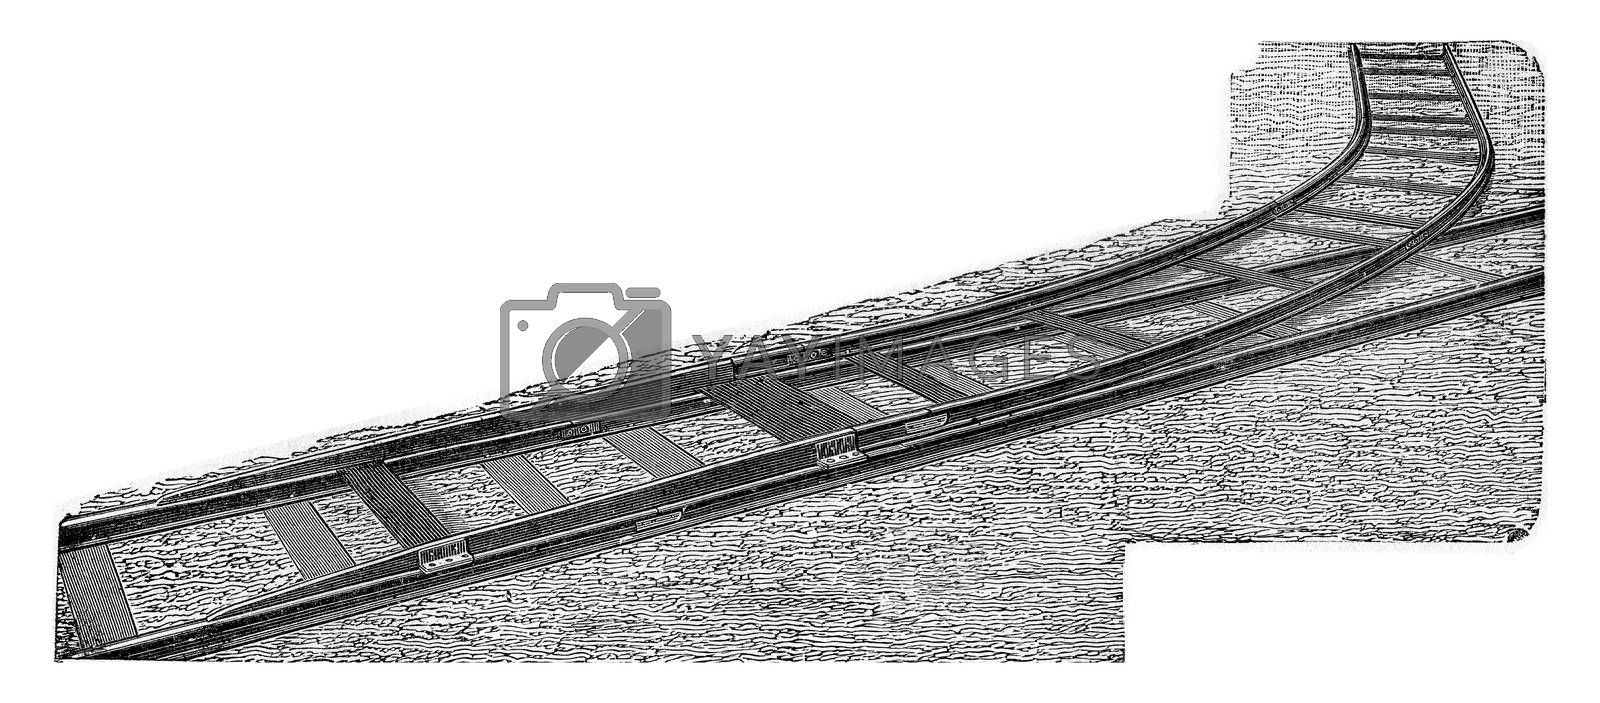 The Decauville derail to instantly connect an auxiliary lane on any point of an existing path without cutting, vintage engraved illustration.